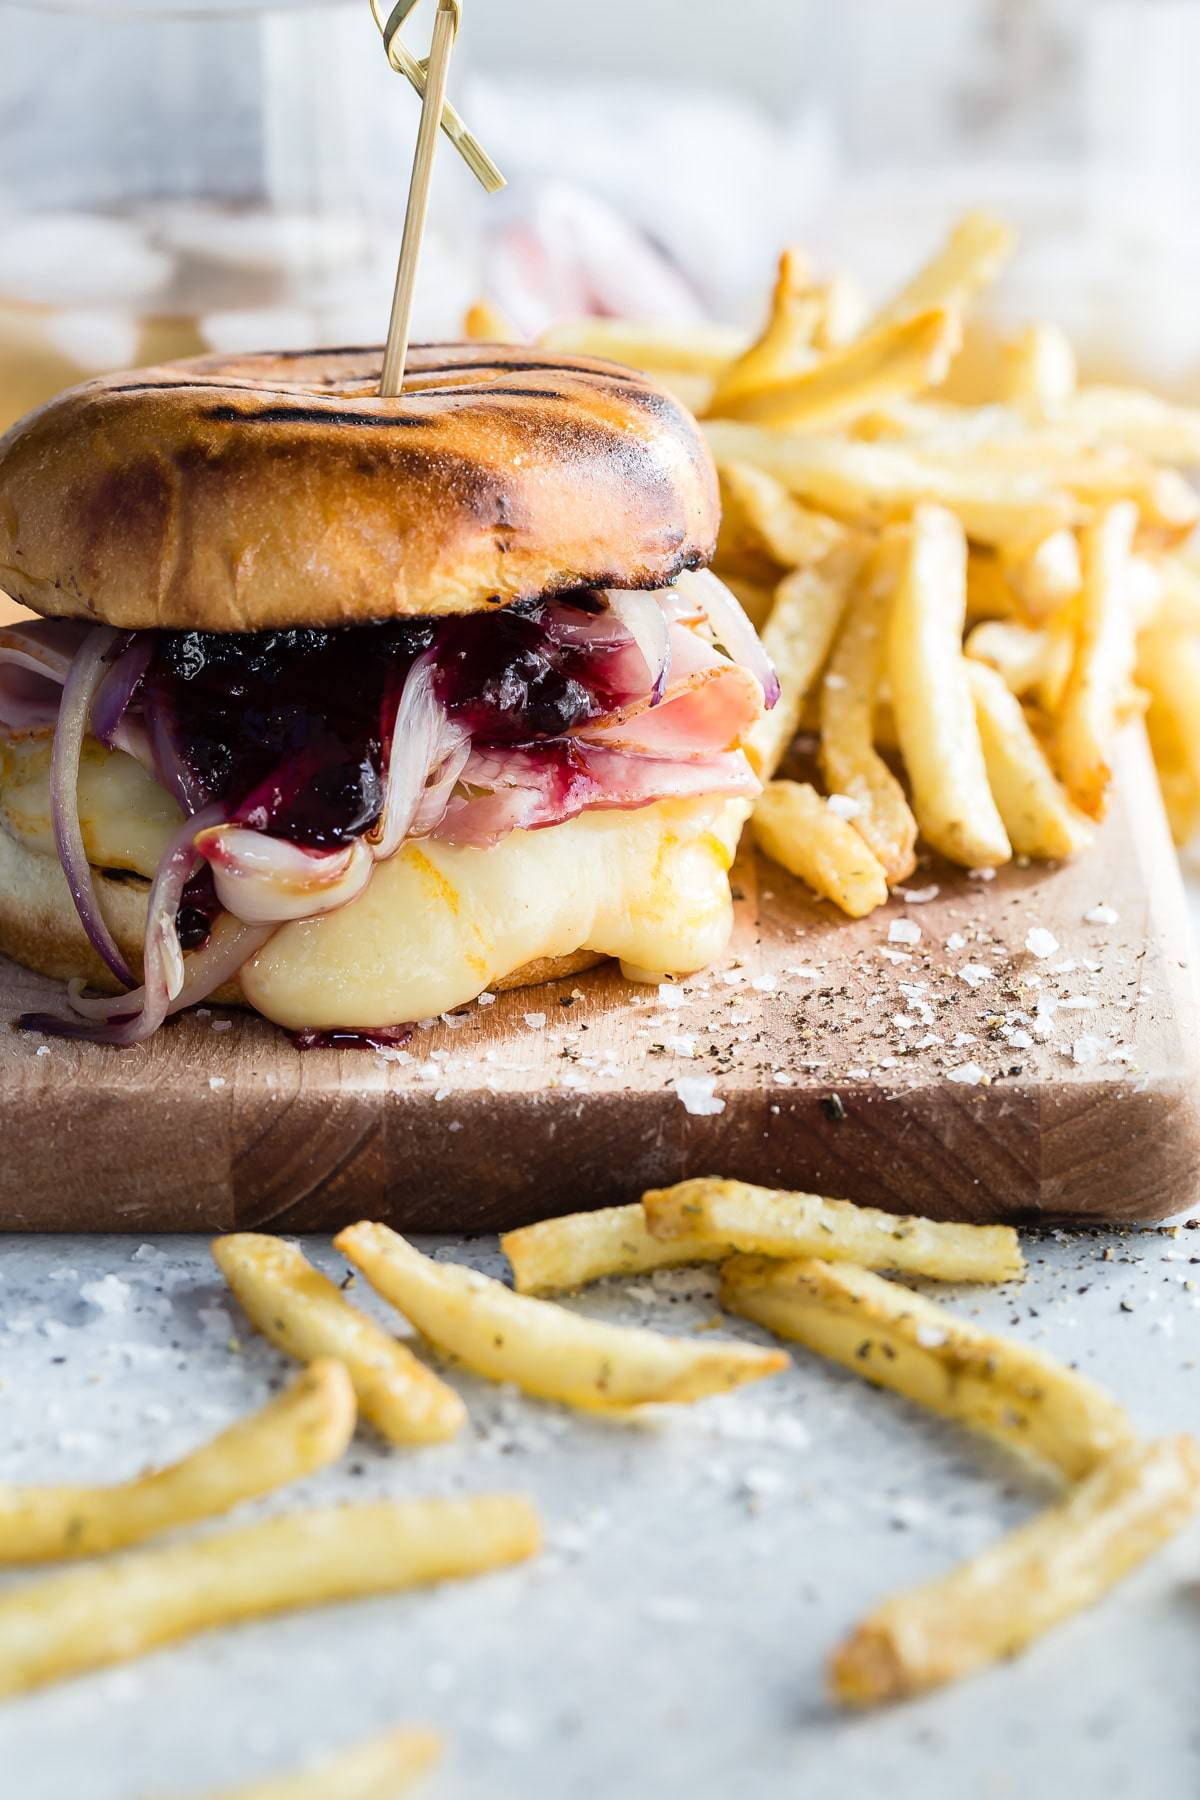 A juicy Monte Cristo Burger topped with smoked ham, blueberry jam and melted Arla Muenster Cheese.